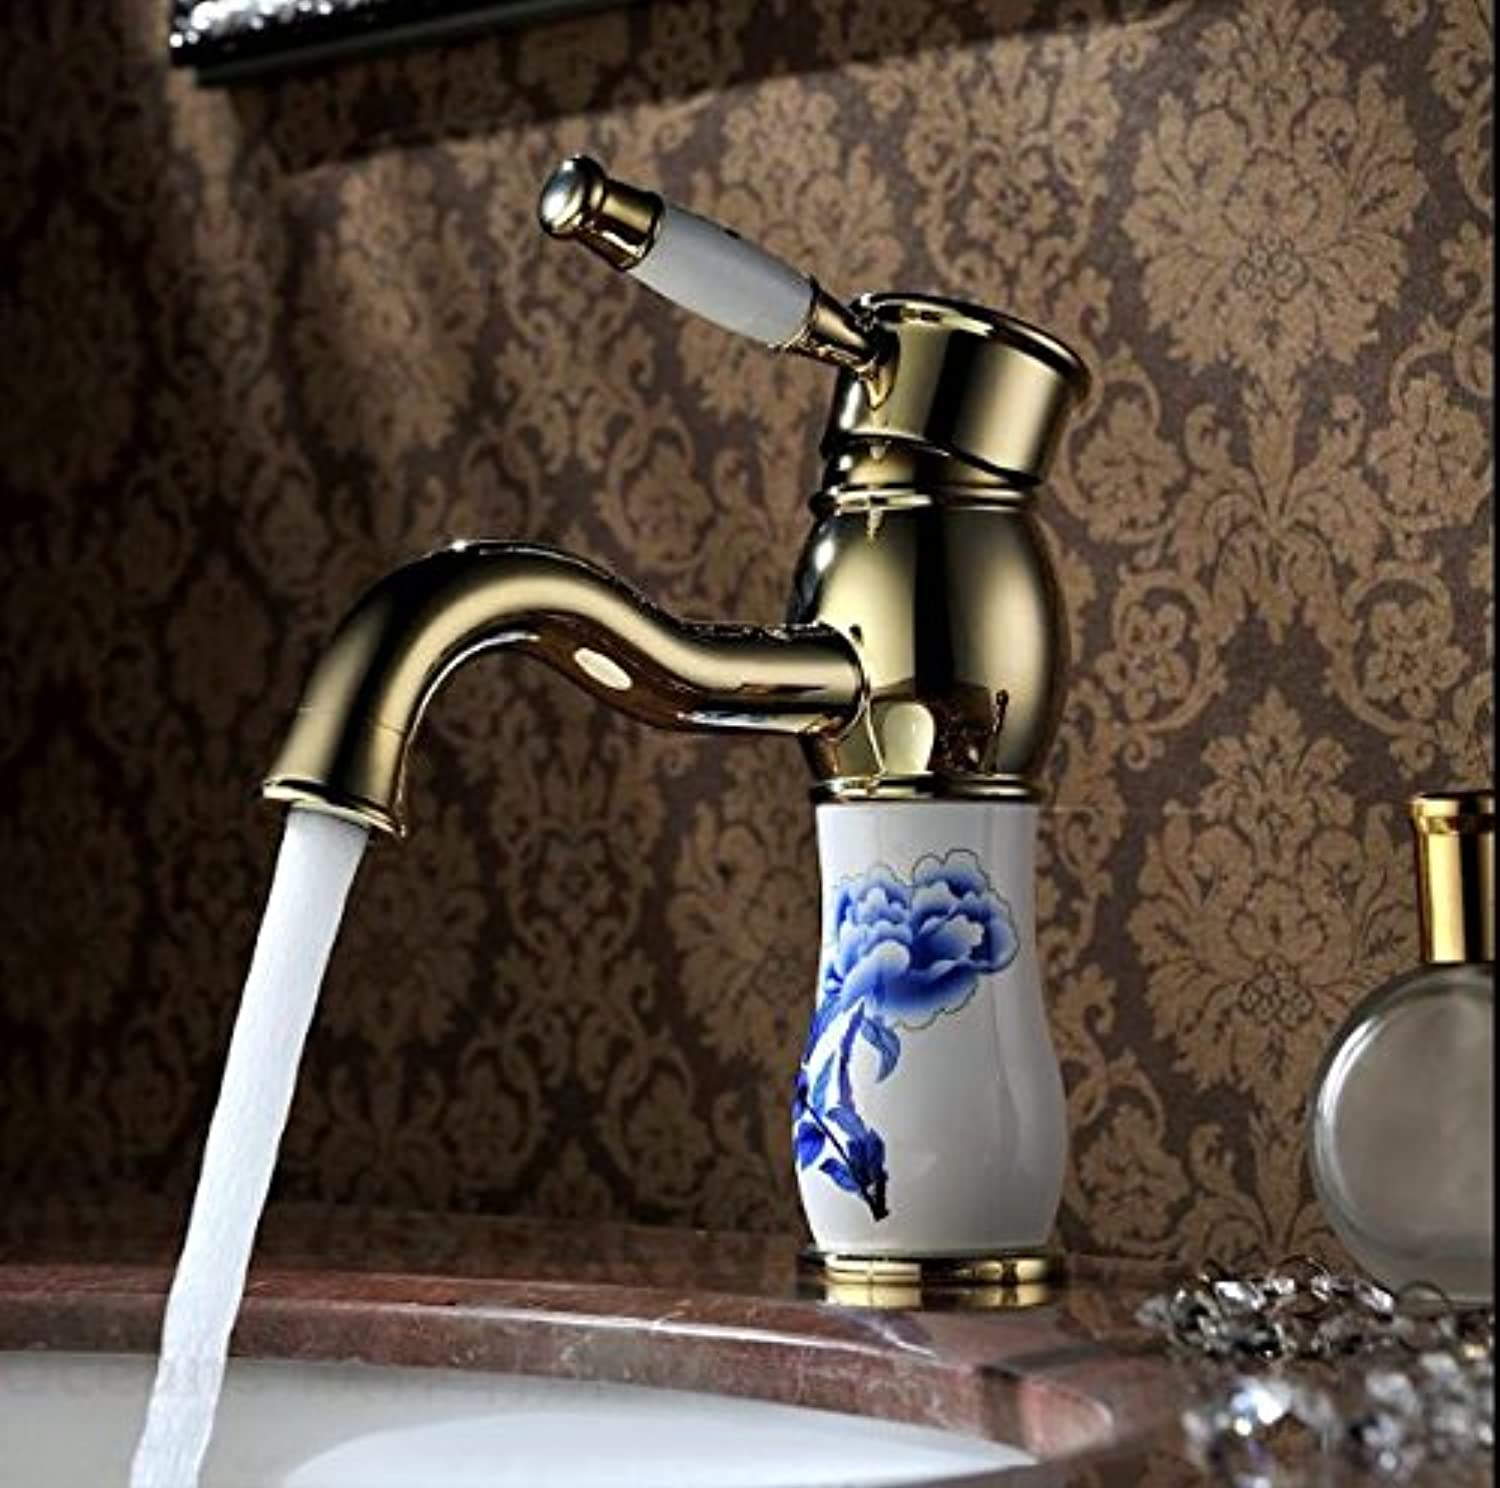 U-Enjoy Water Faucet gold Top Quality Brass & Jade Faucet Hot and Cold Mixer Luxury Bathroom Sink Faucet Mixer Tap (Free Shipping)